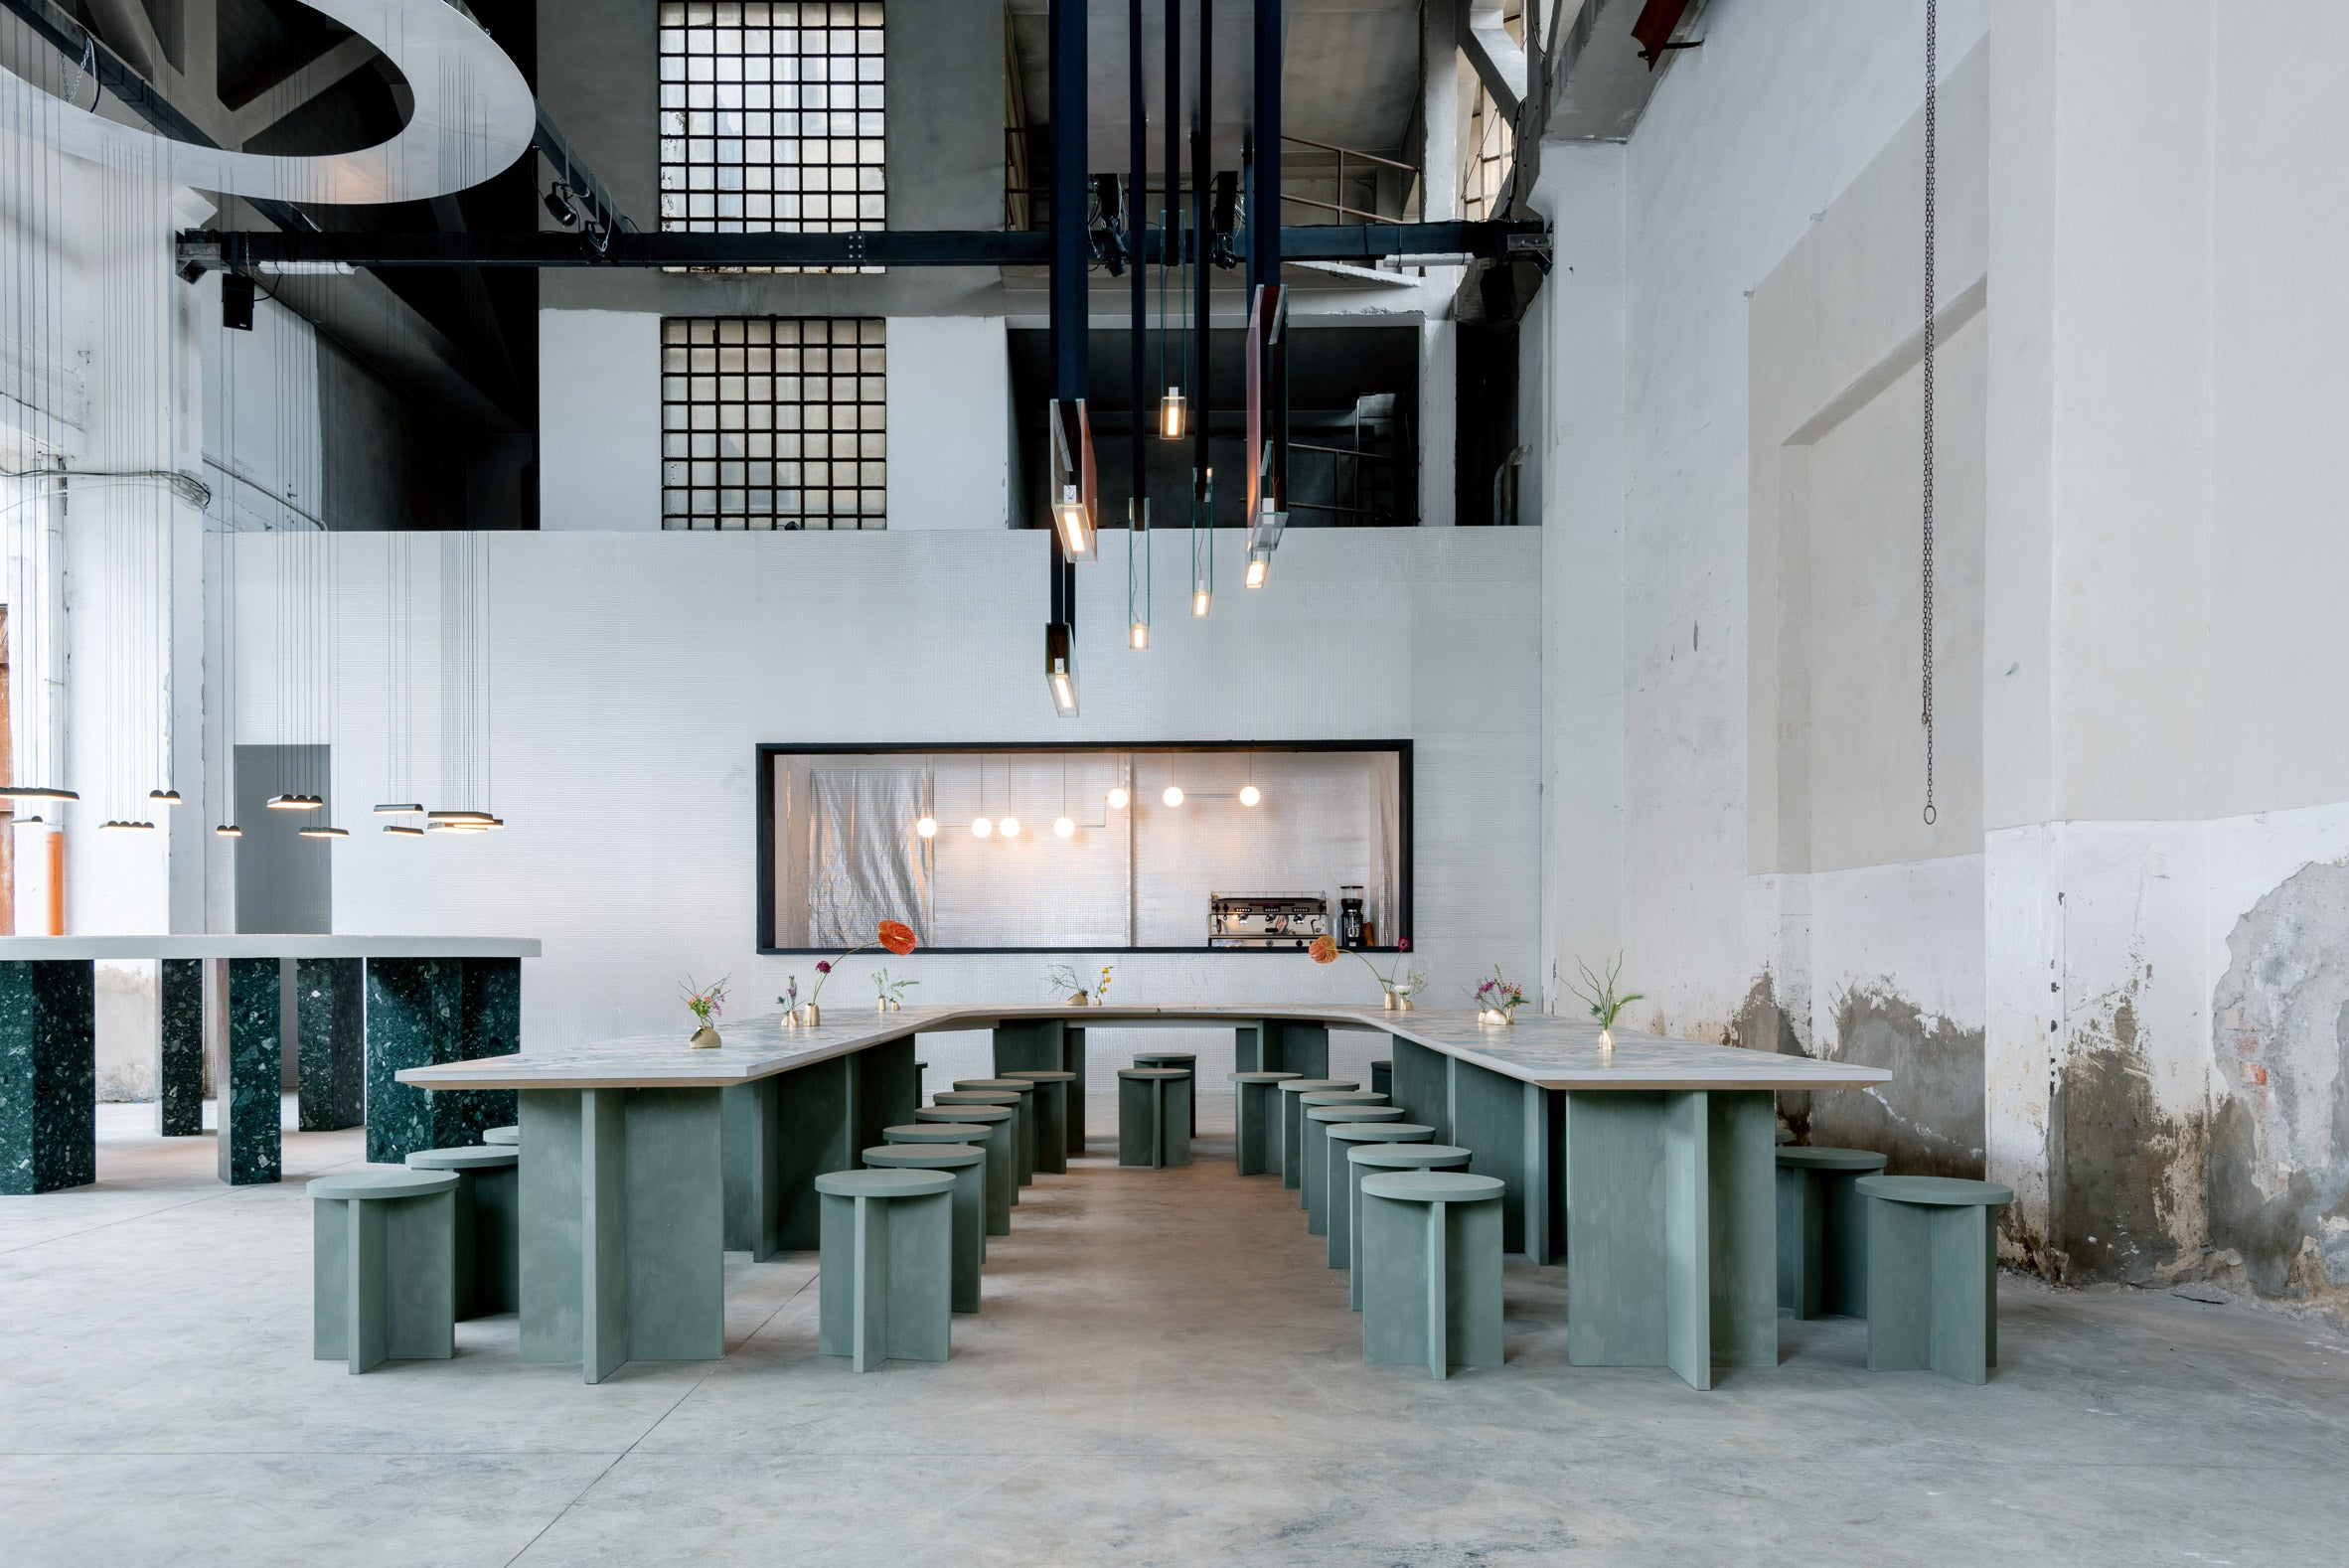 FEATURED Caffe-populaire_dezeen_2364_col_5